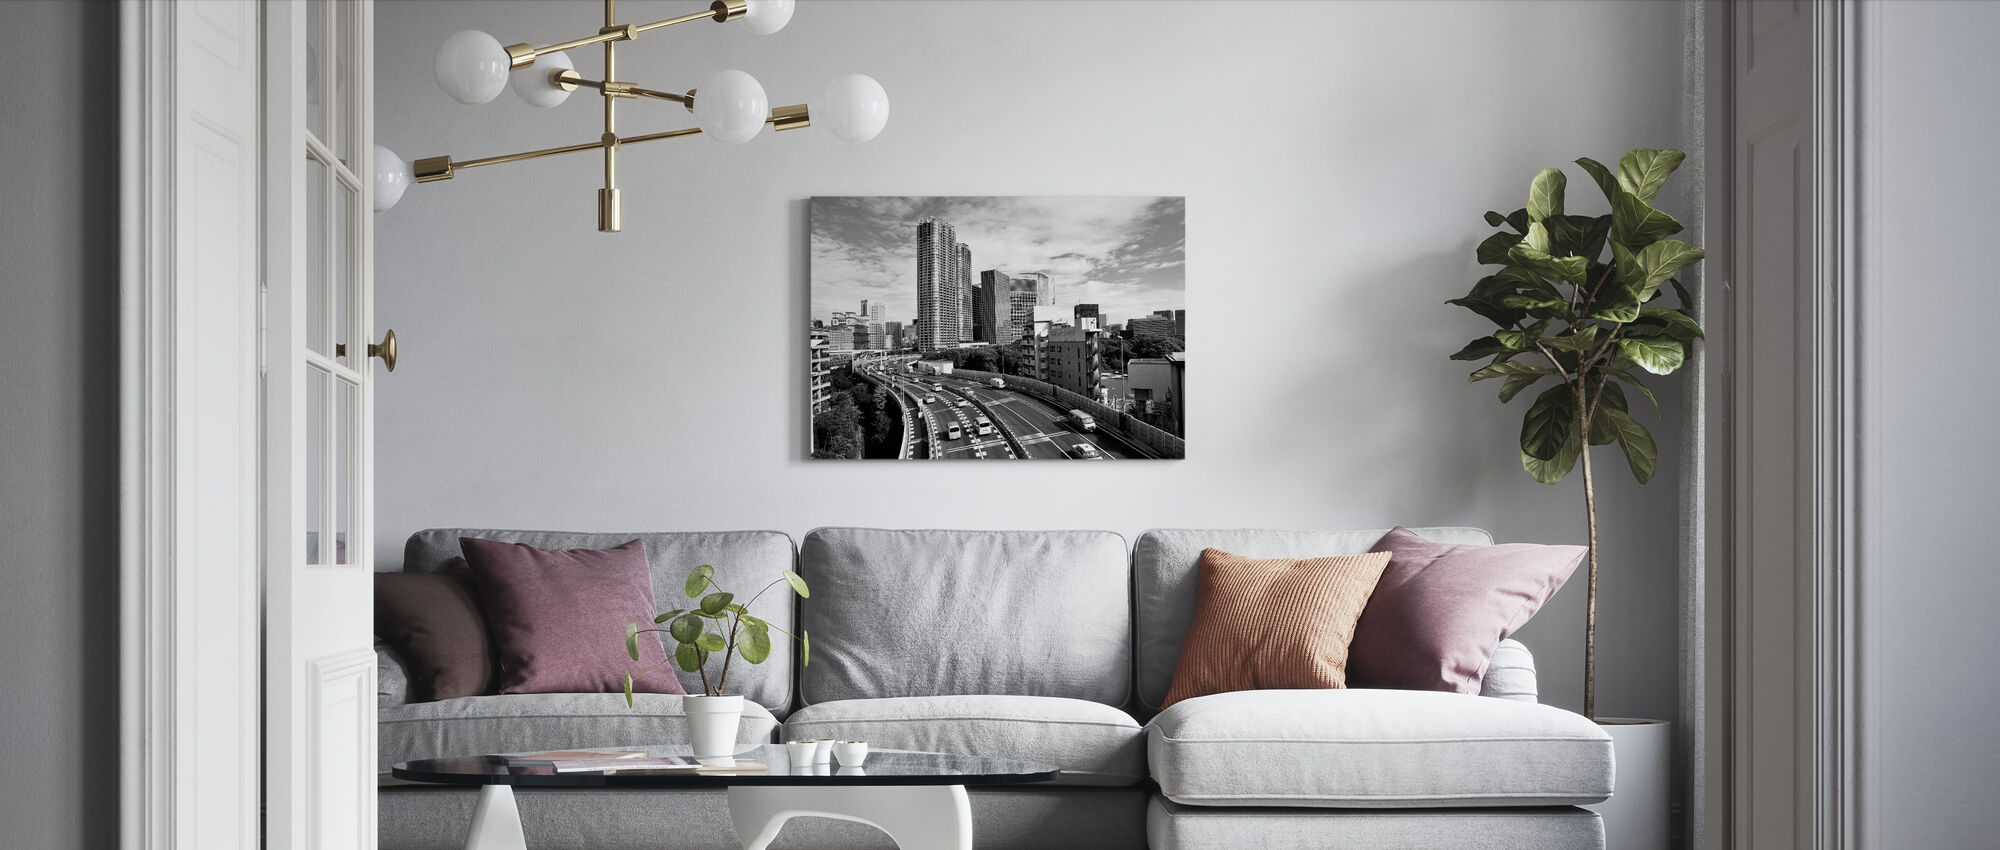 Passing Over the Expressway in the Sunny Morning - Canvas print - Living Room